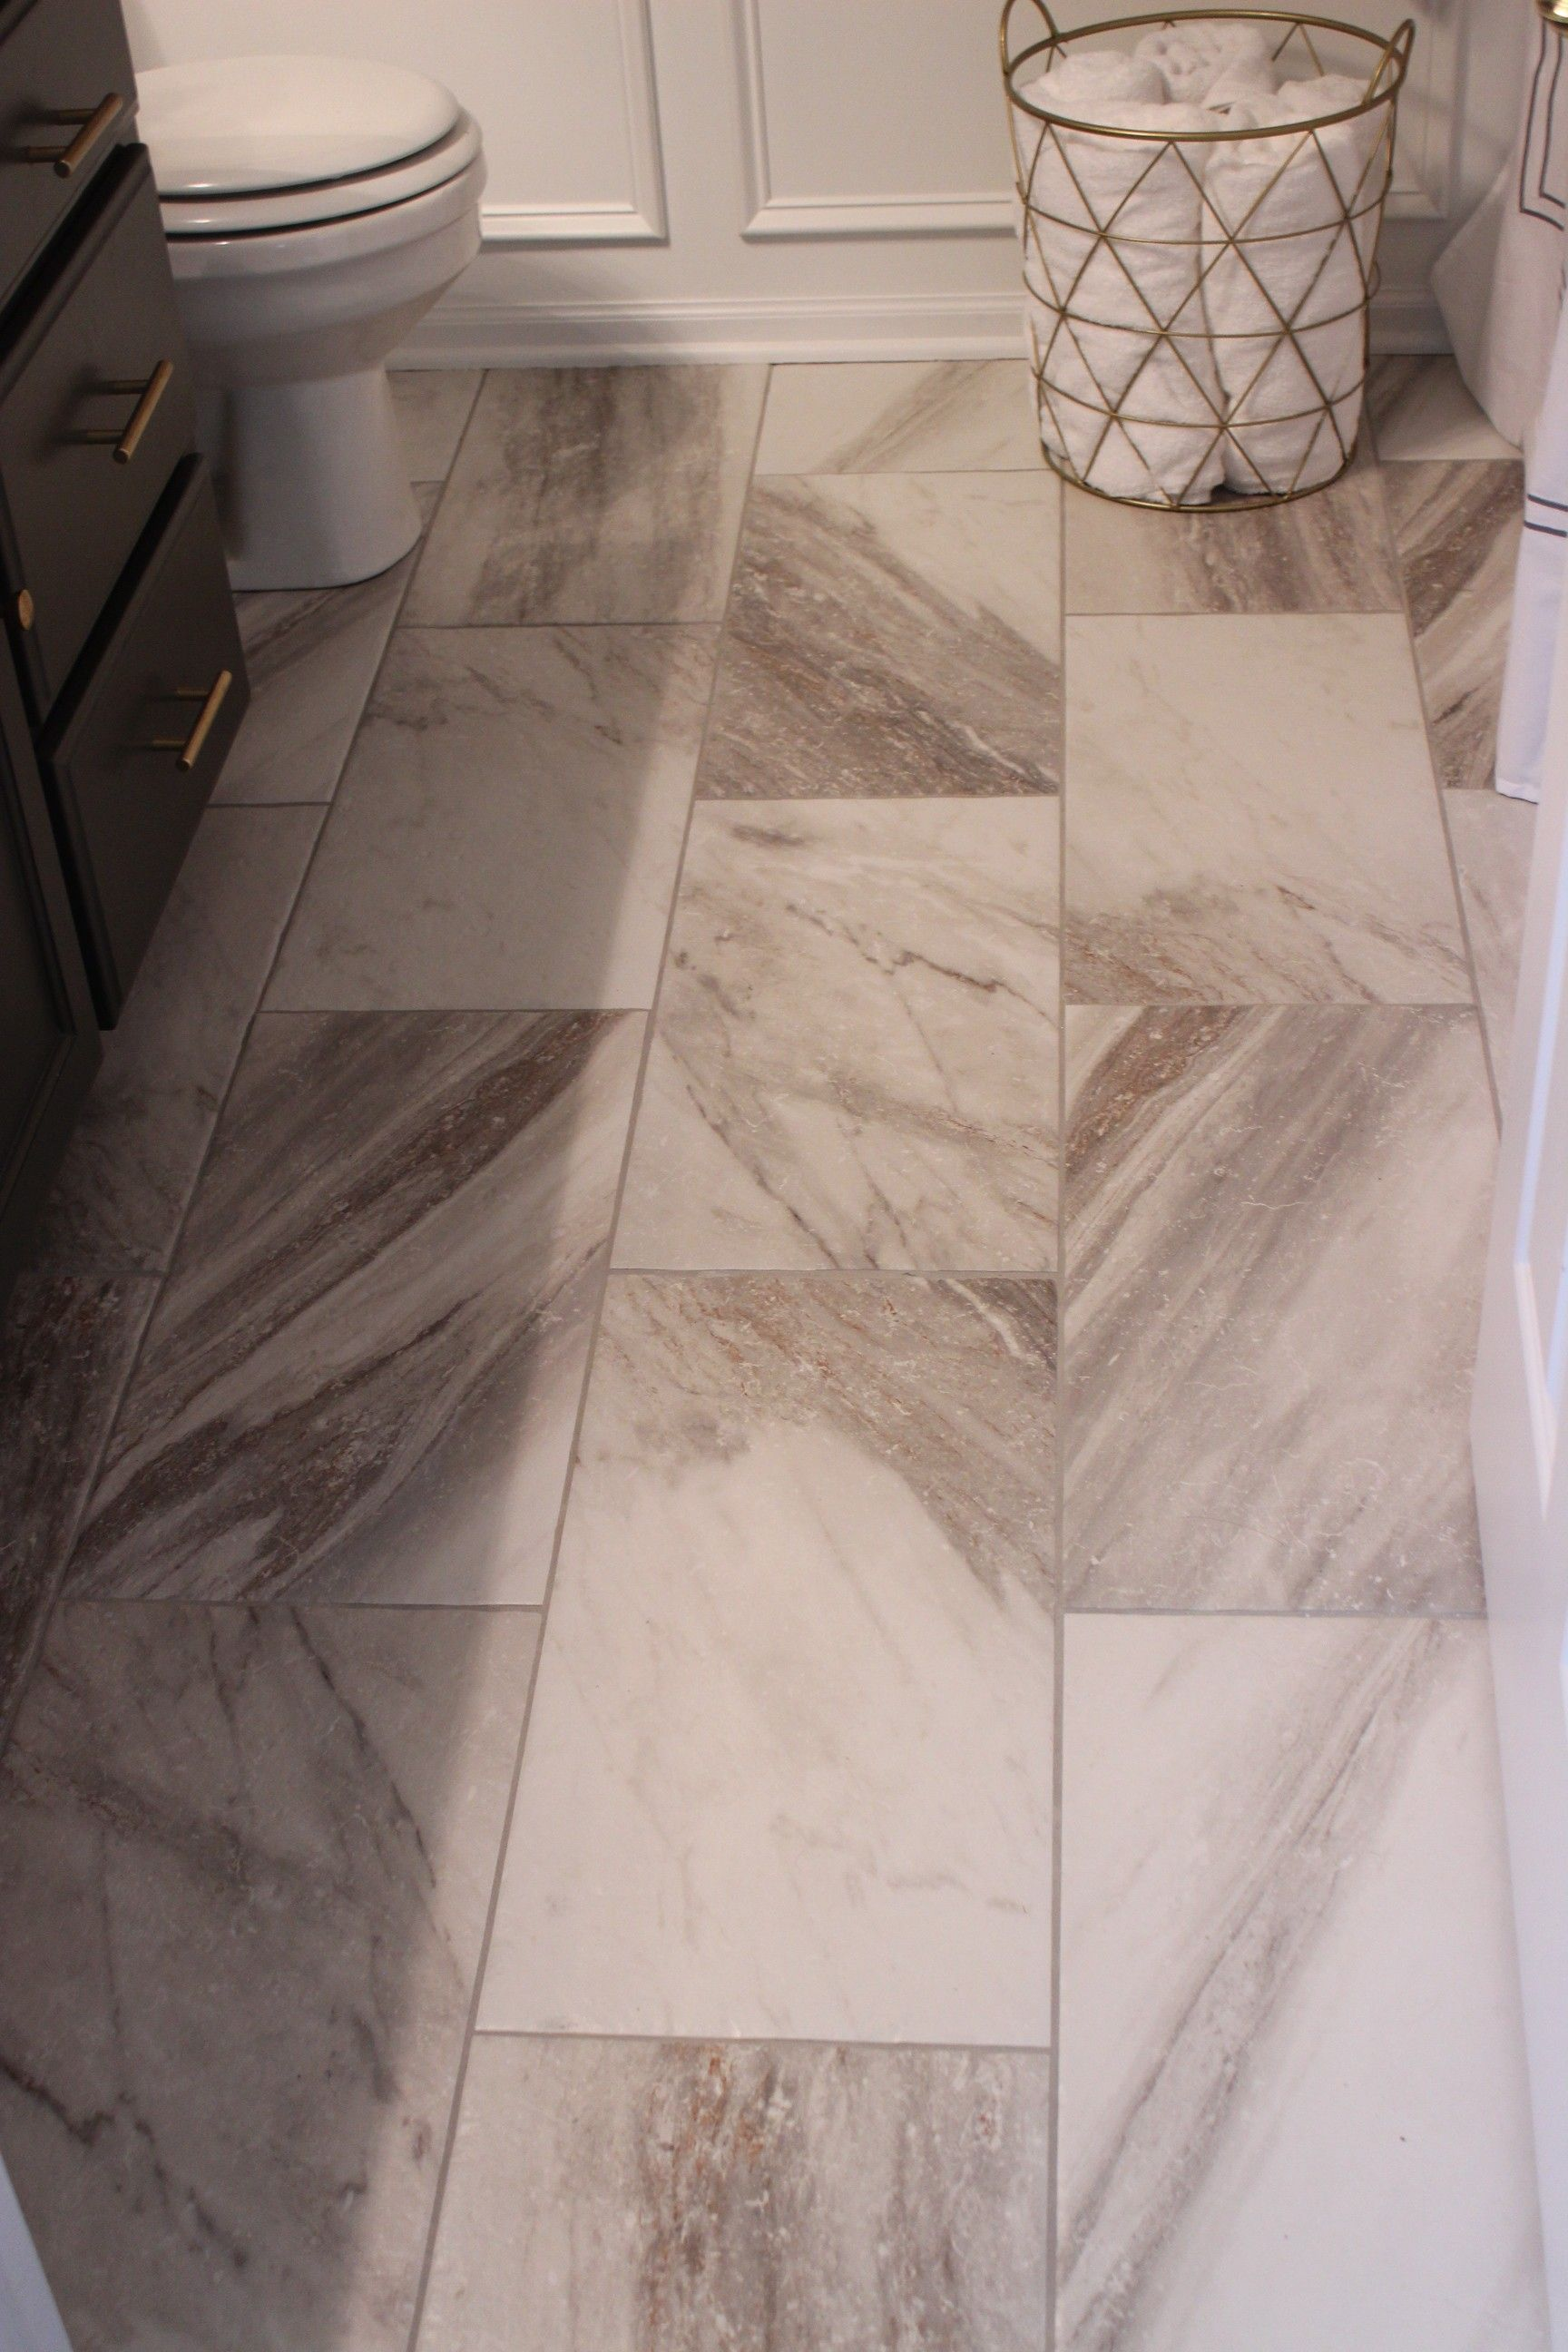 Sovereign stone pearl porcelain tile in 12 x 24 at lowes perfect ebs bathroom floor sovereign stone pearl porcelain tile in 12 x 24 at lowes dailygadgetfo Gallery